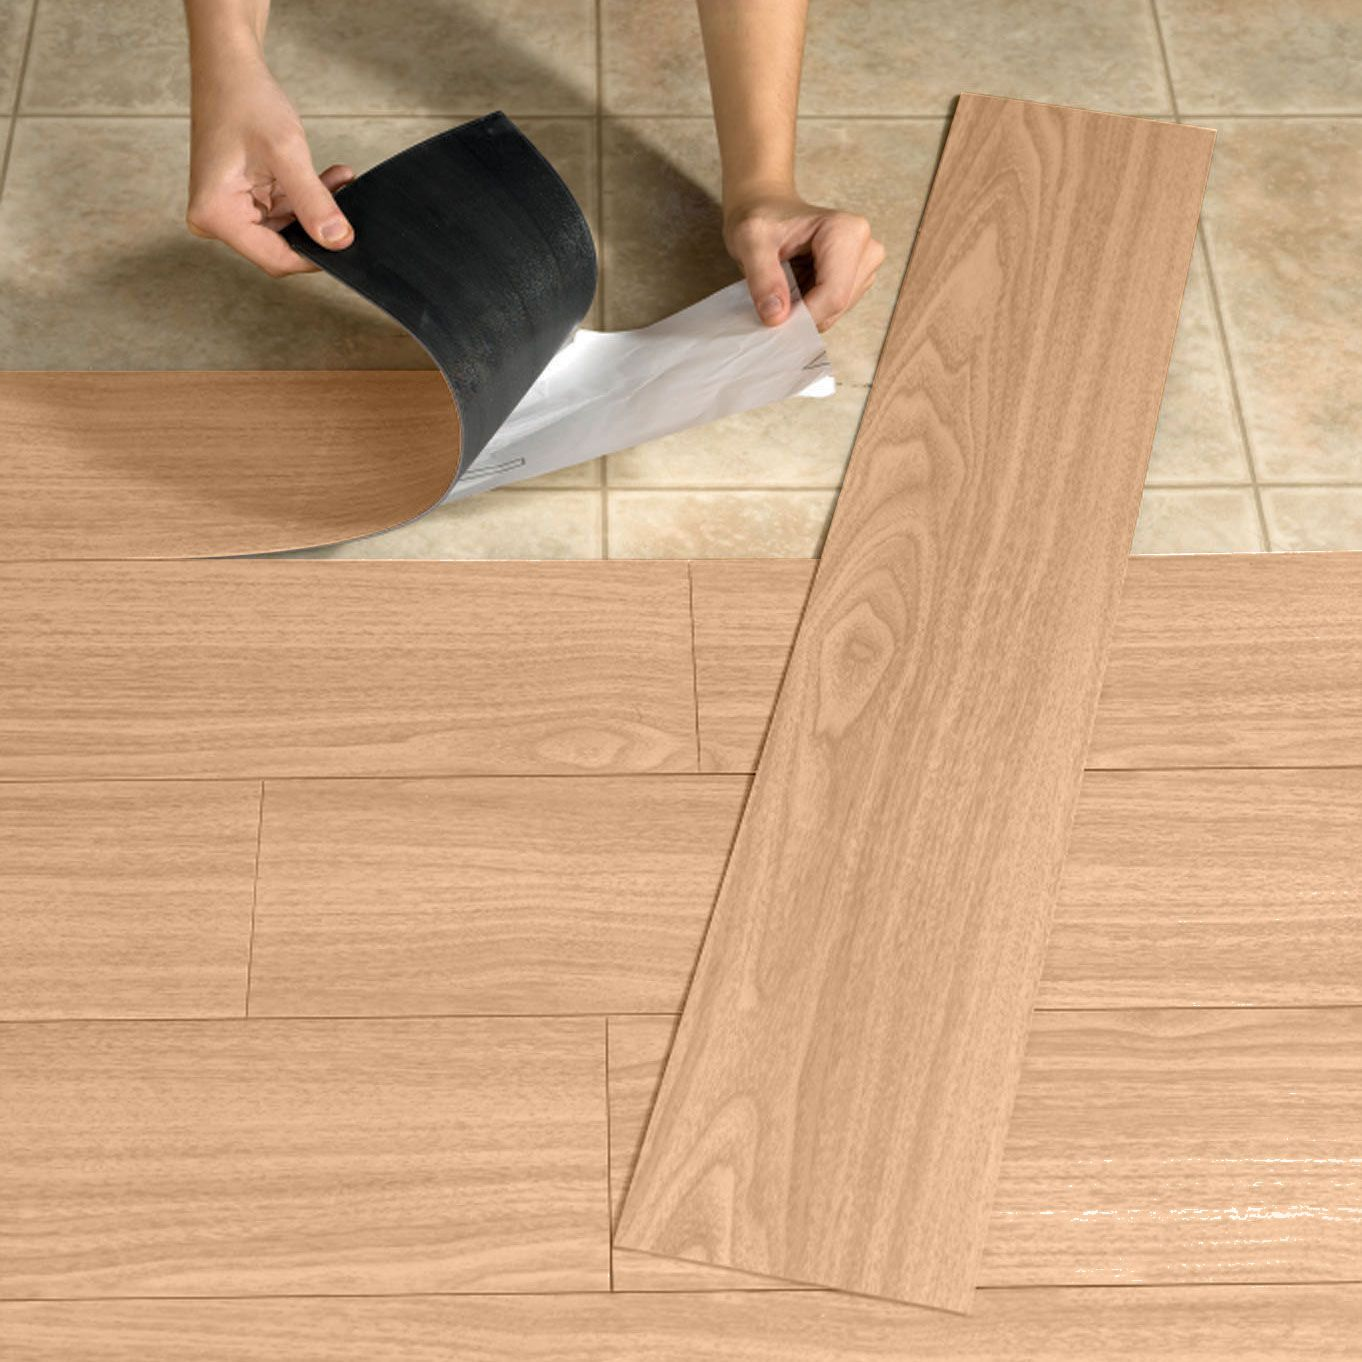 Vinyl Flooring Wood Reviews: Peel-And-Stick Wood-Look Plank Flooring